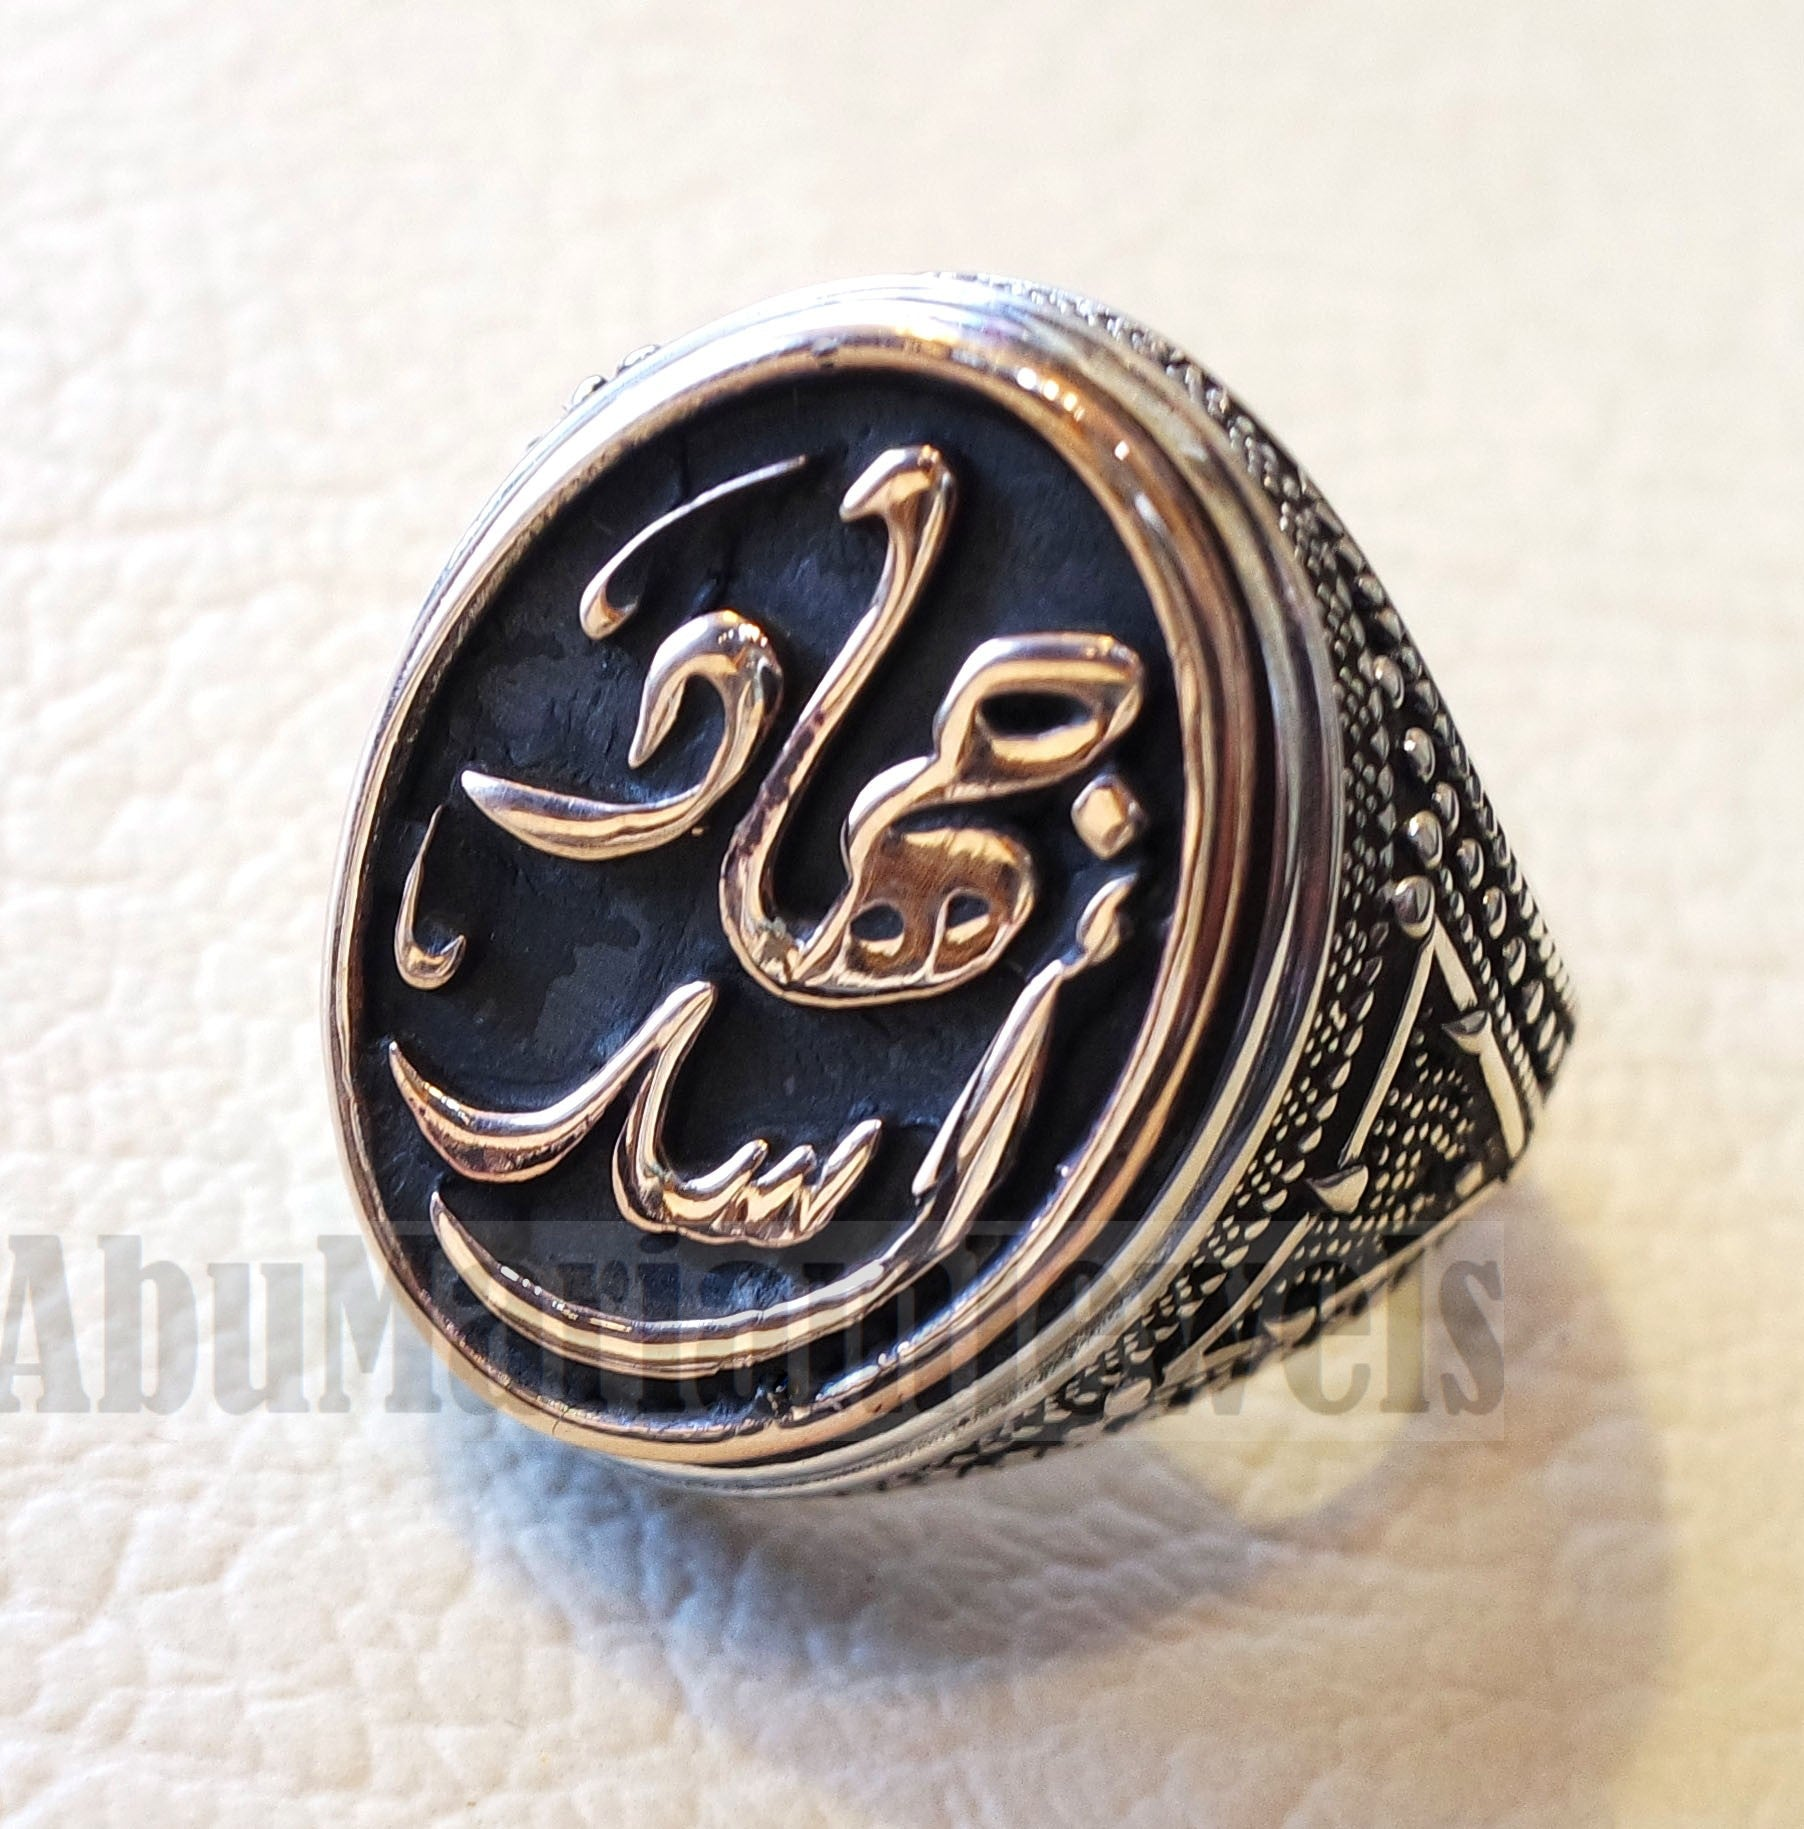 Customized Arabic calligraphy names ring personalized antique jewelry style sterling silver 925 and bronze any size TSB1010 خاتم اسم تفصيل